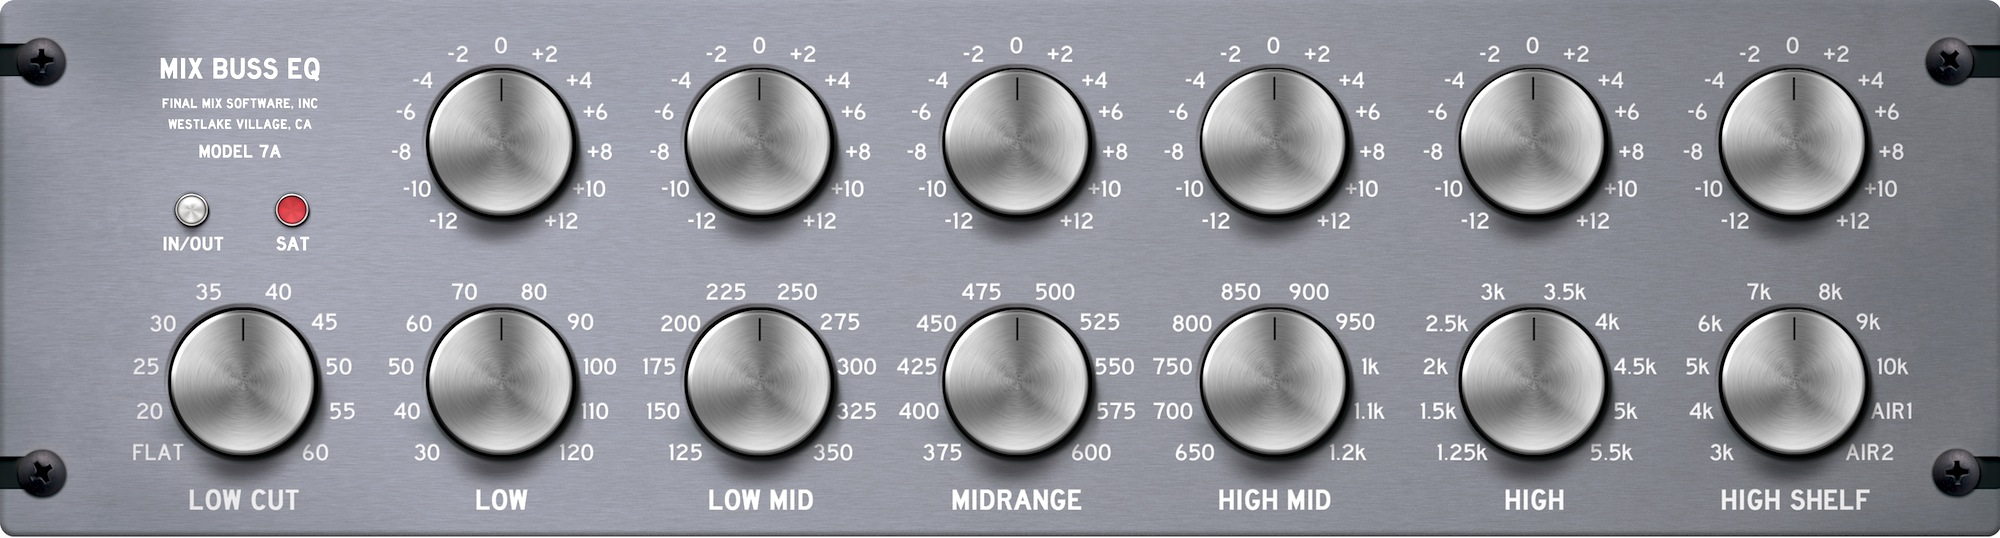 mix-buss-eq_faceplate_7A-v4 Web